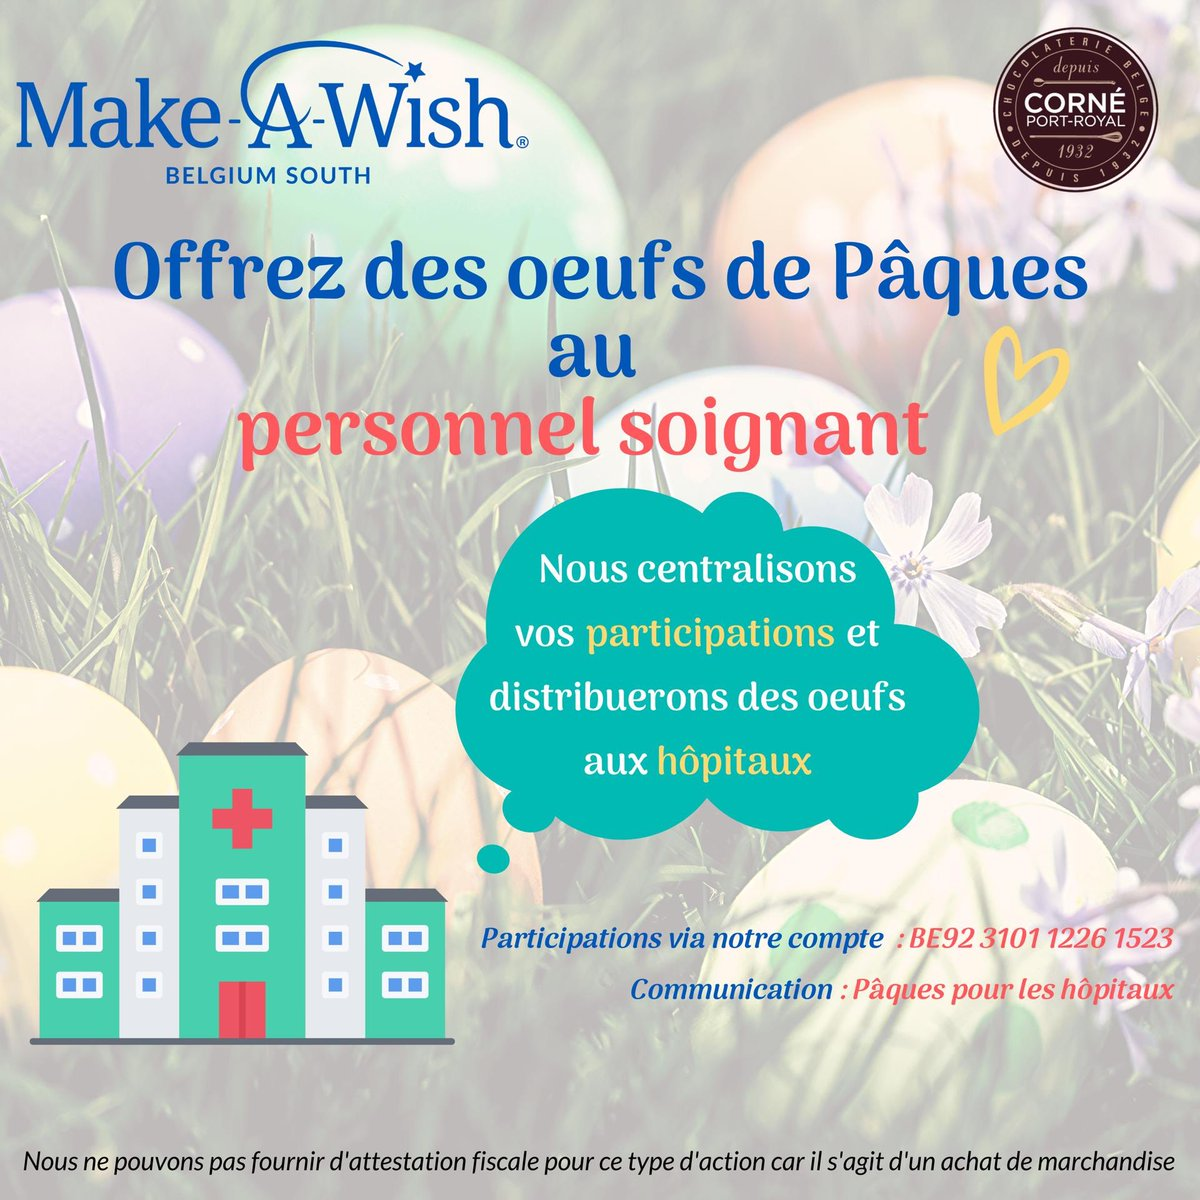 Make-A-Wish Belgium South wants to thank the hospital staff in Belgium by offering them Easter eggs 🐣 As godfather of Make-A-Wish, do like me and support them by paying the amount of your choice!  #makeawish #makeawishbelgiumsouth #onestensemble 👍🏿👌🏿